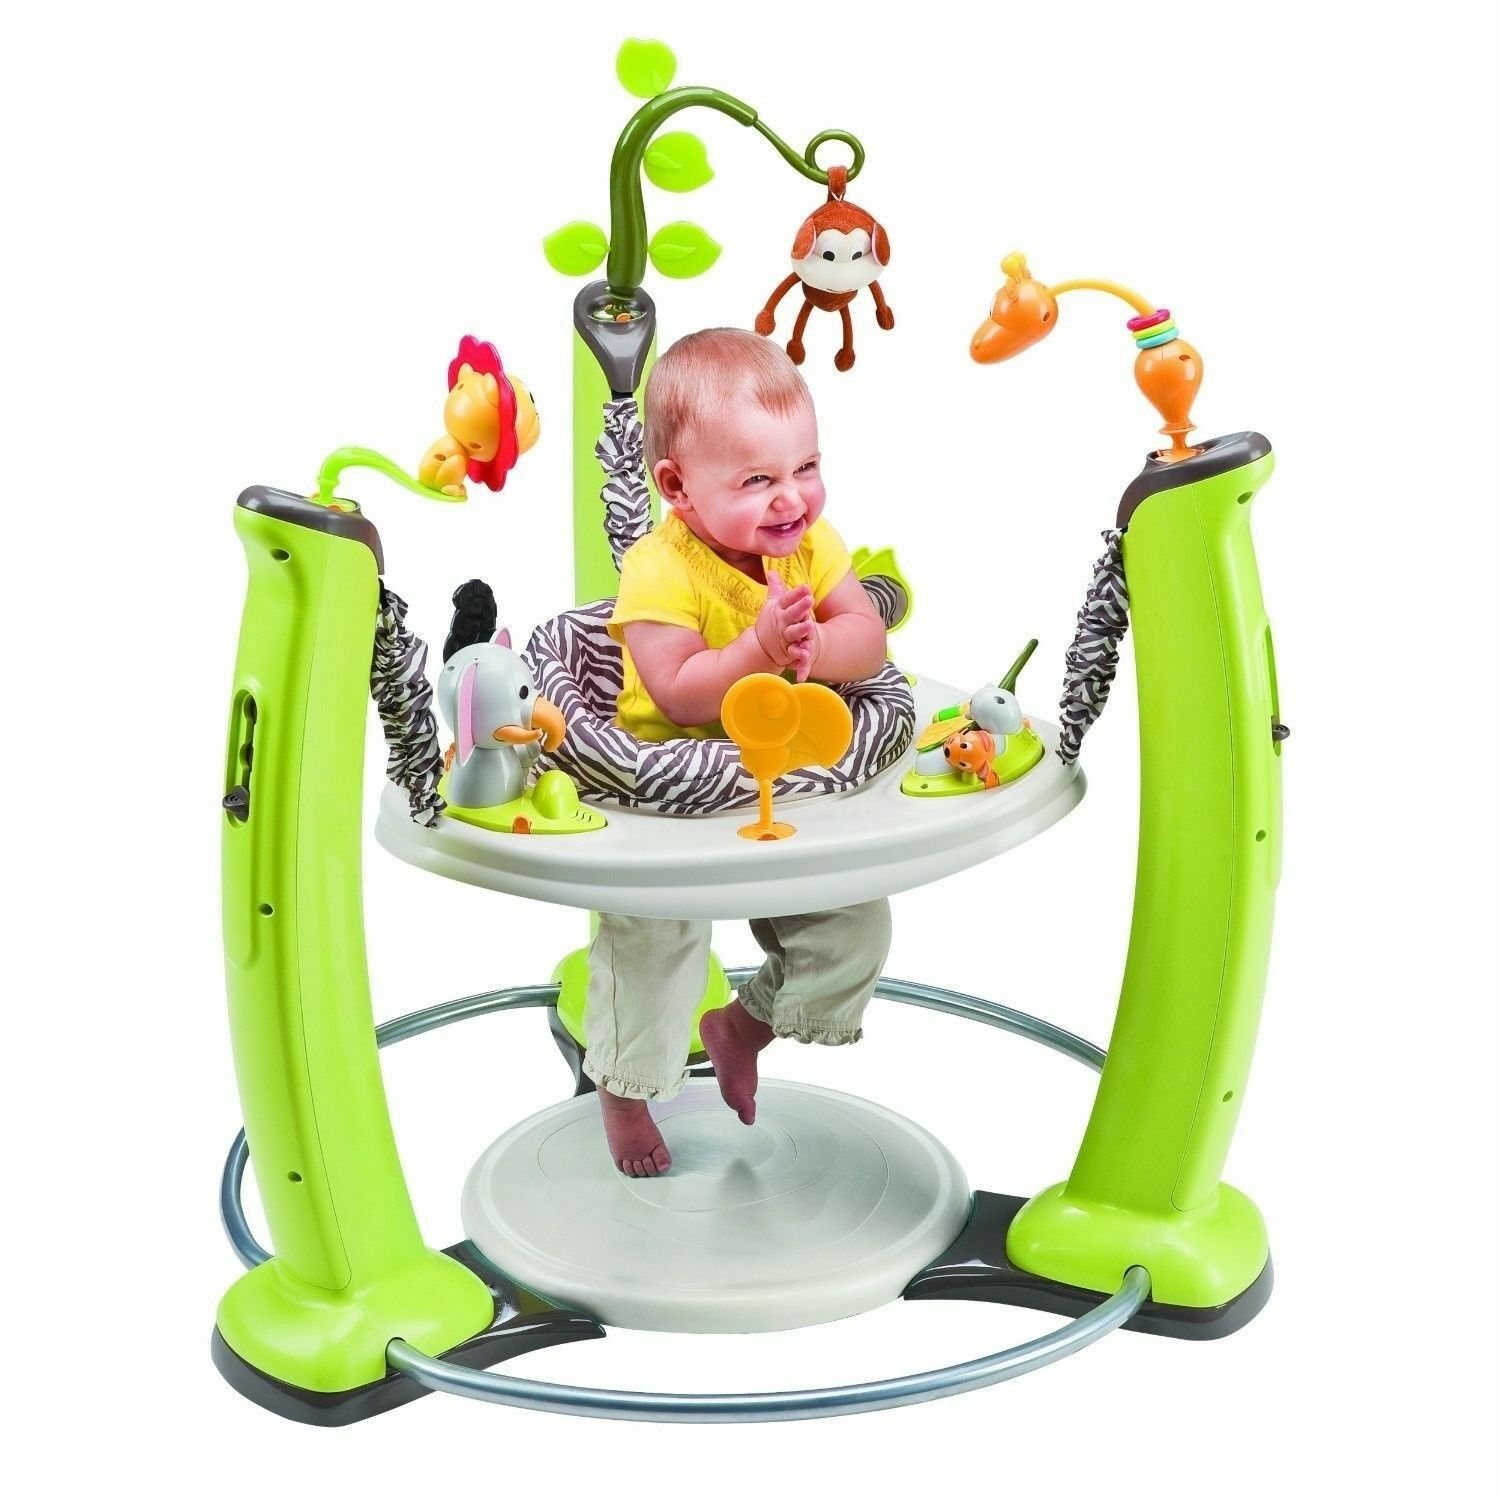 walker bouncing chair carex rubbermaid shower baby activity jumper saucer bouncer infant play